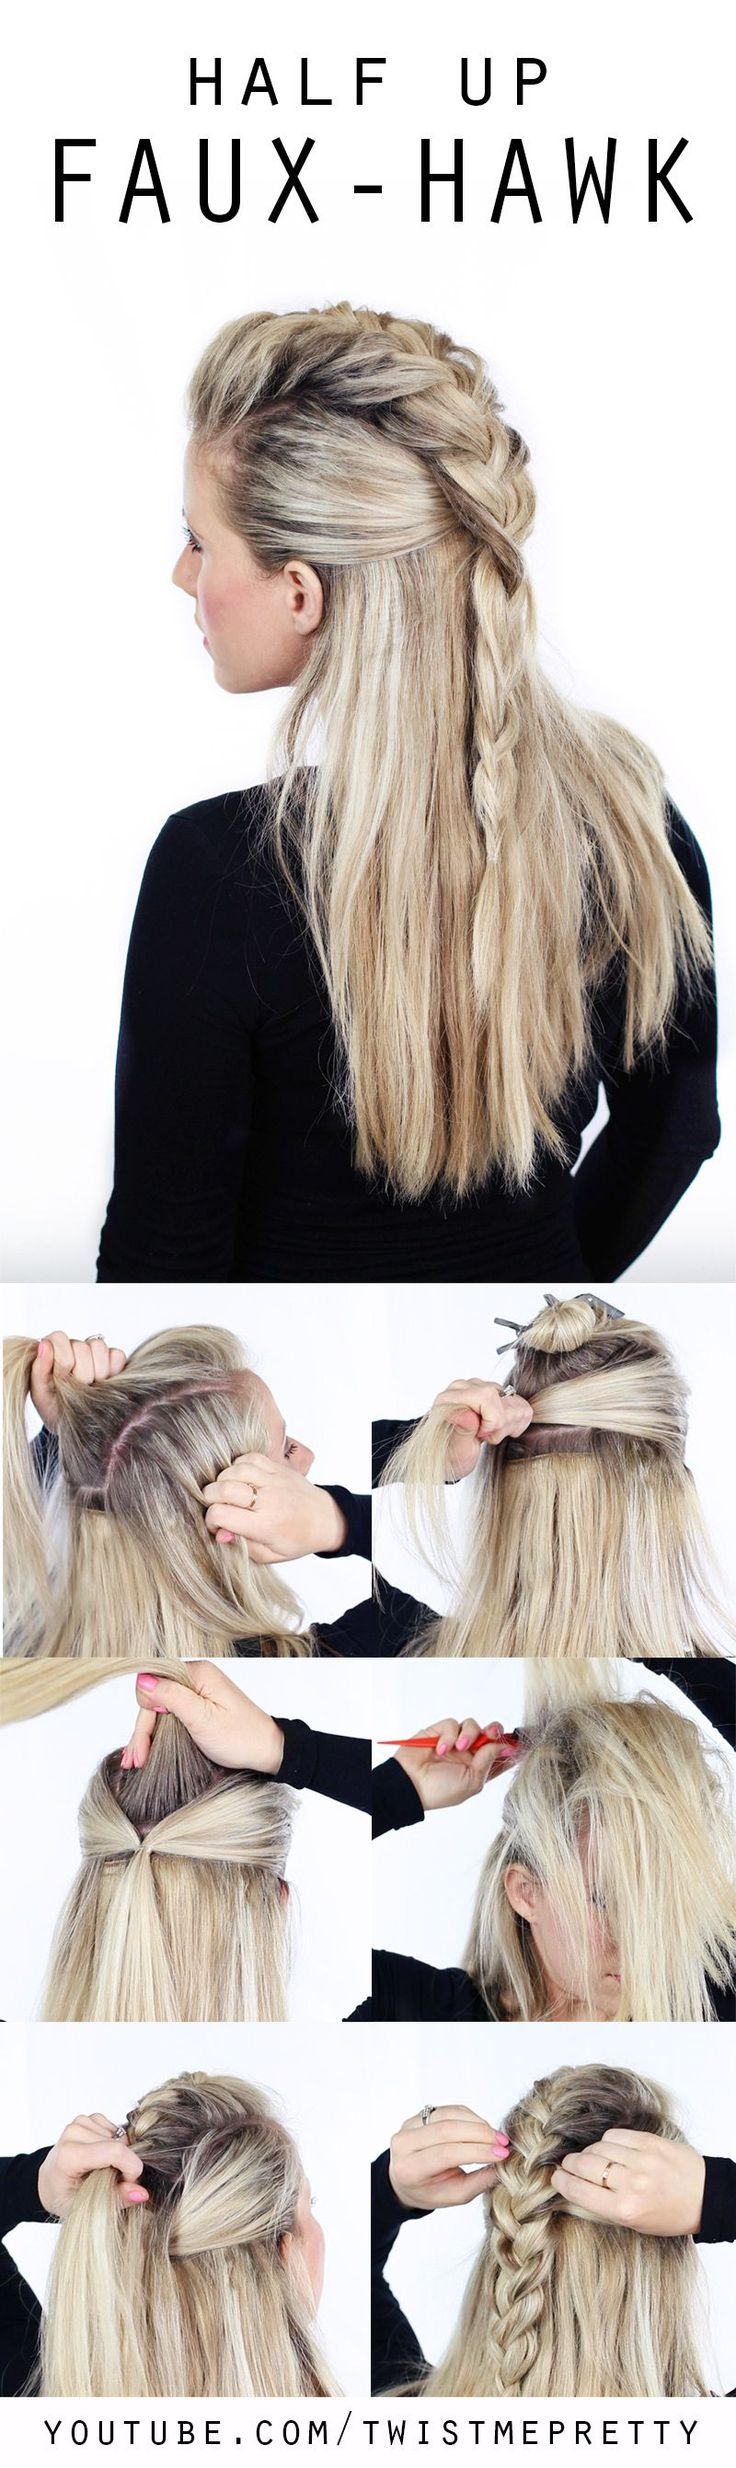 How to Tame Your Hair: Summer Hair Tutorials